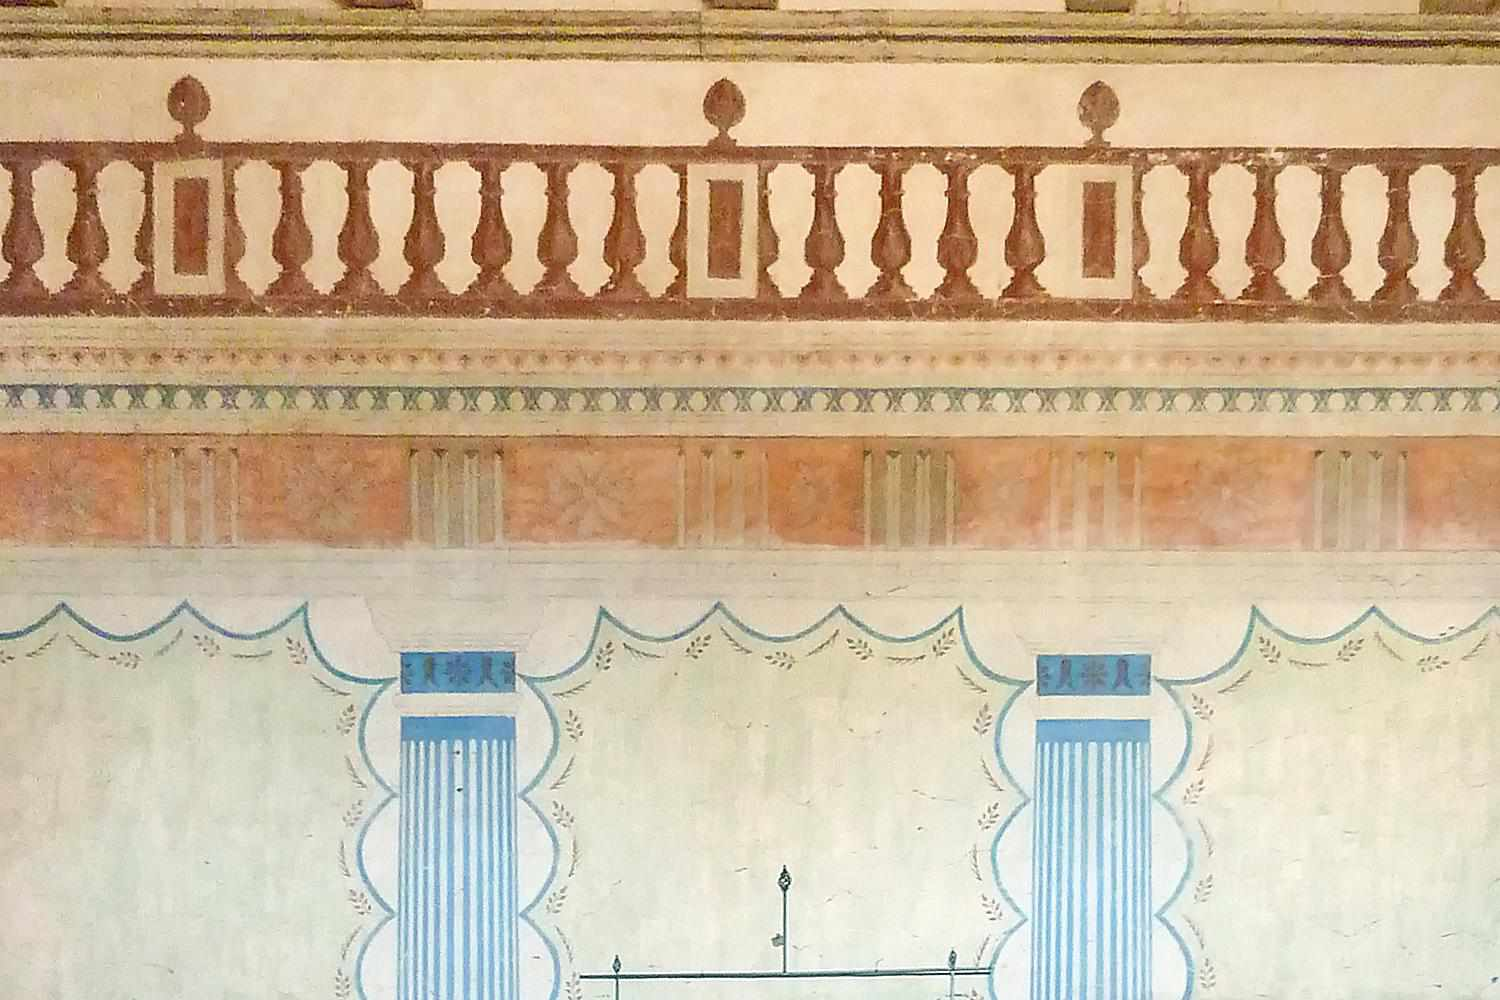 Frescoes at San Miguel Mission